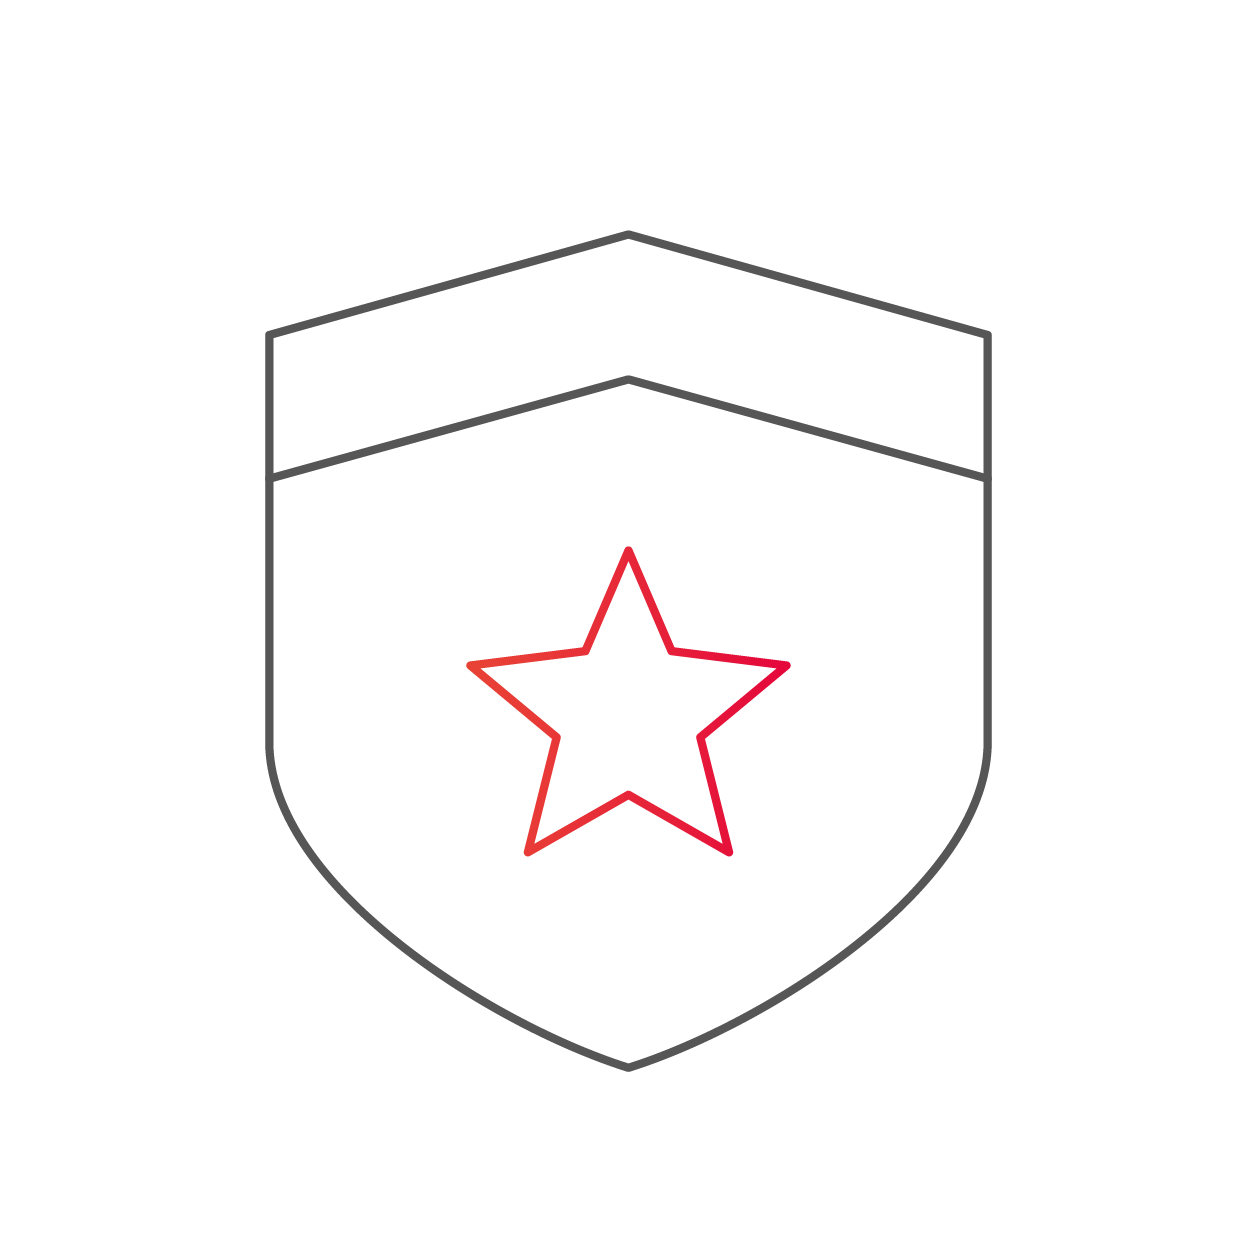 Shield with Star